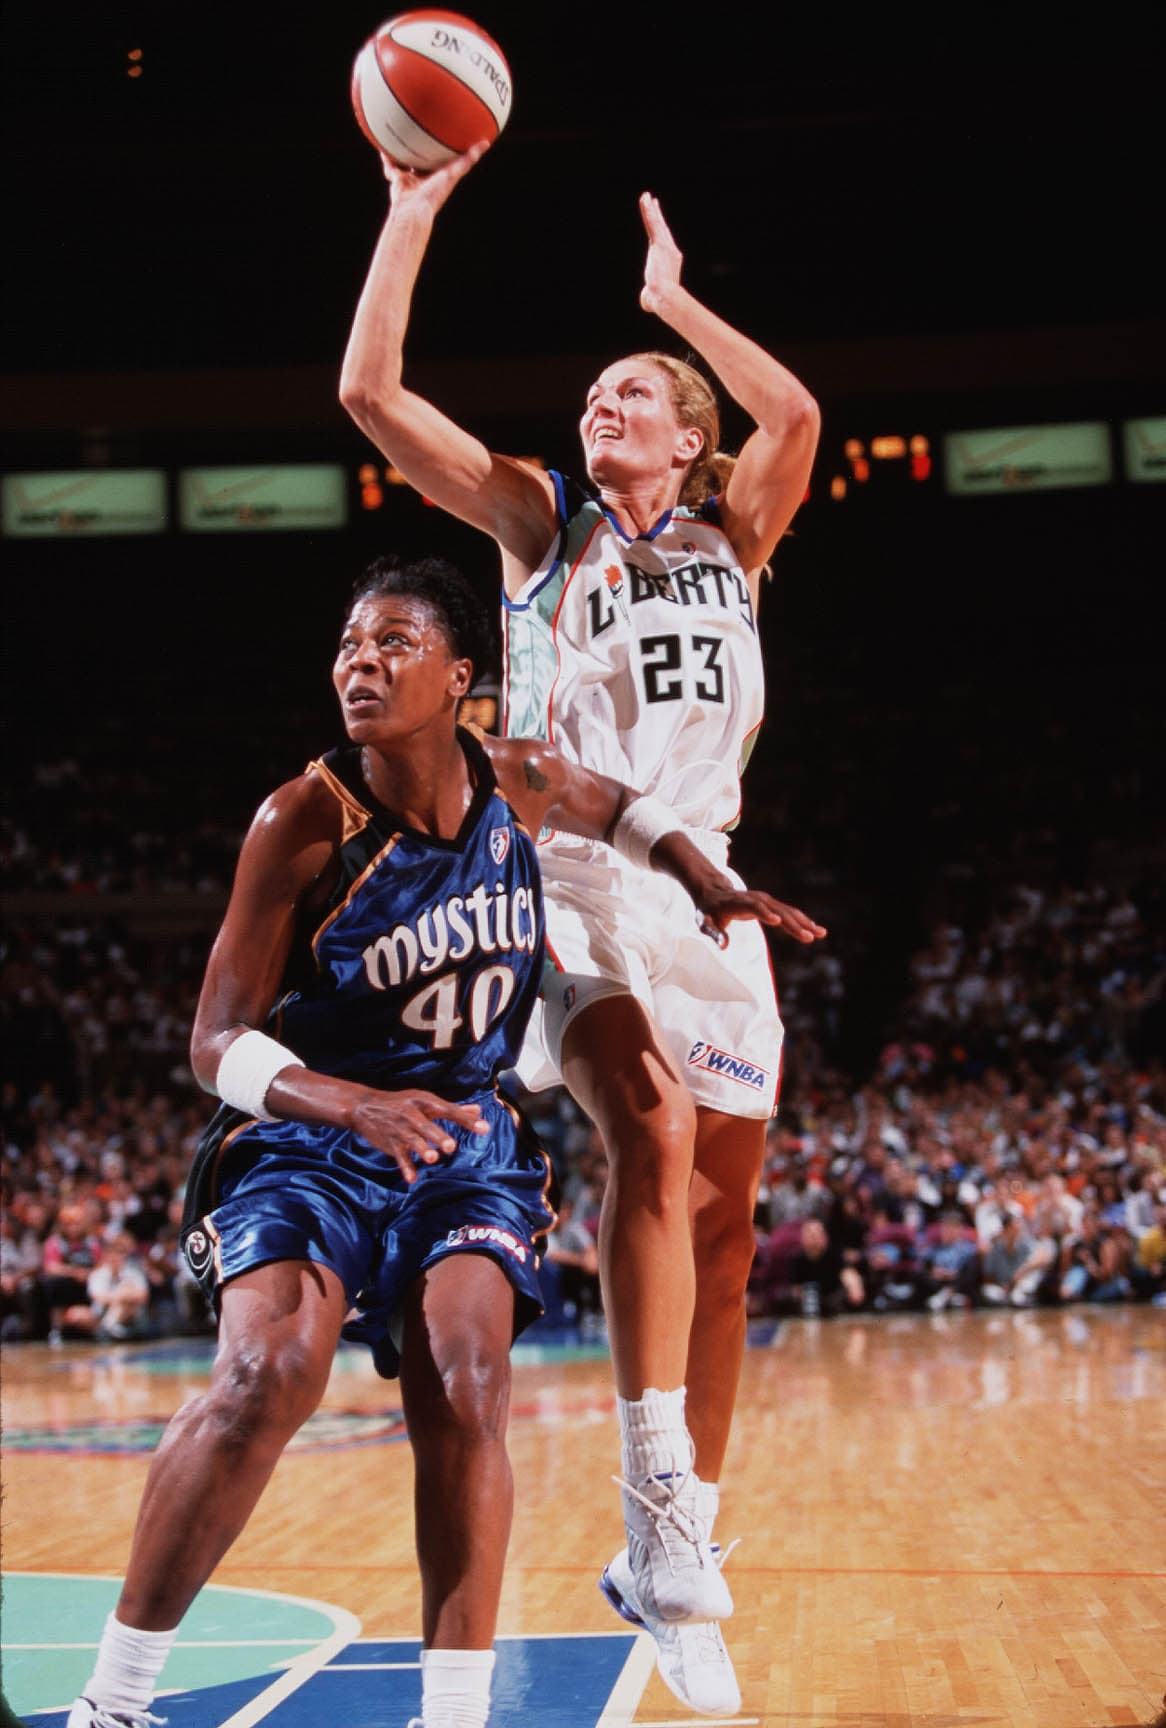 08/02 NY Liberty v. Washington Mystics Madison Square Garden NY Liberty's Sue Wicks